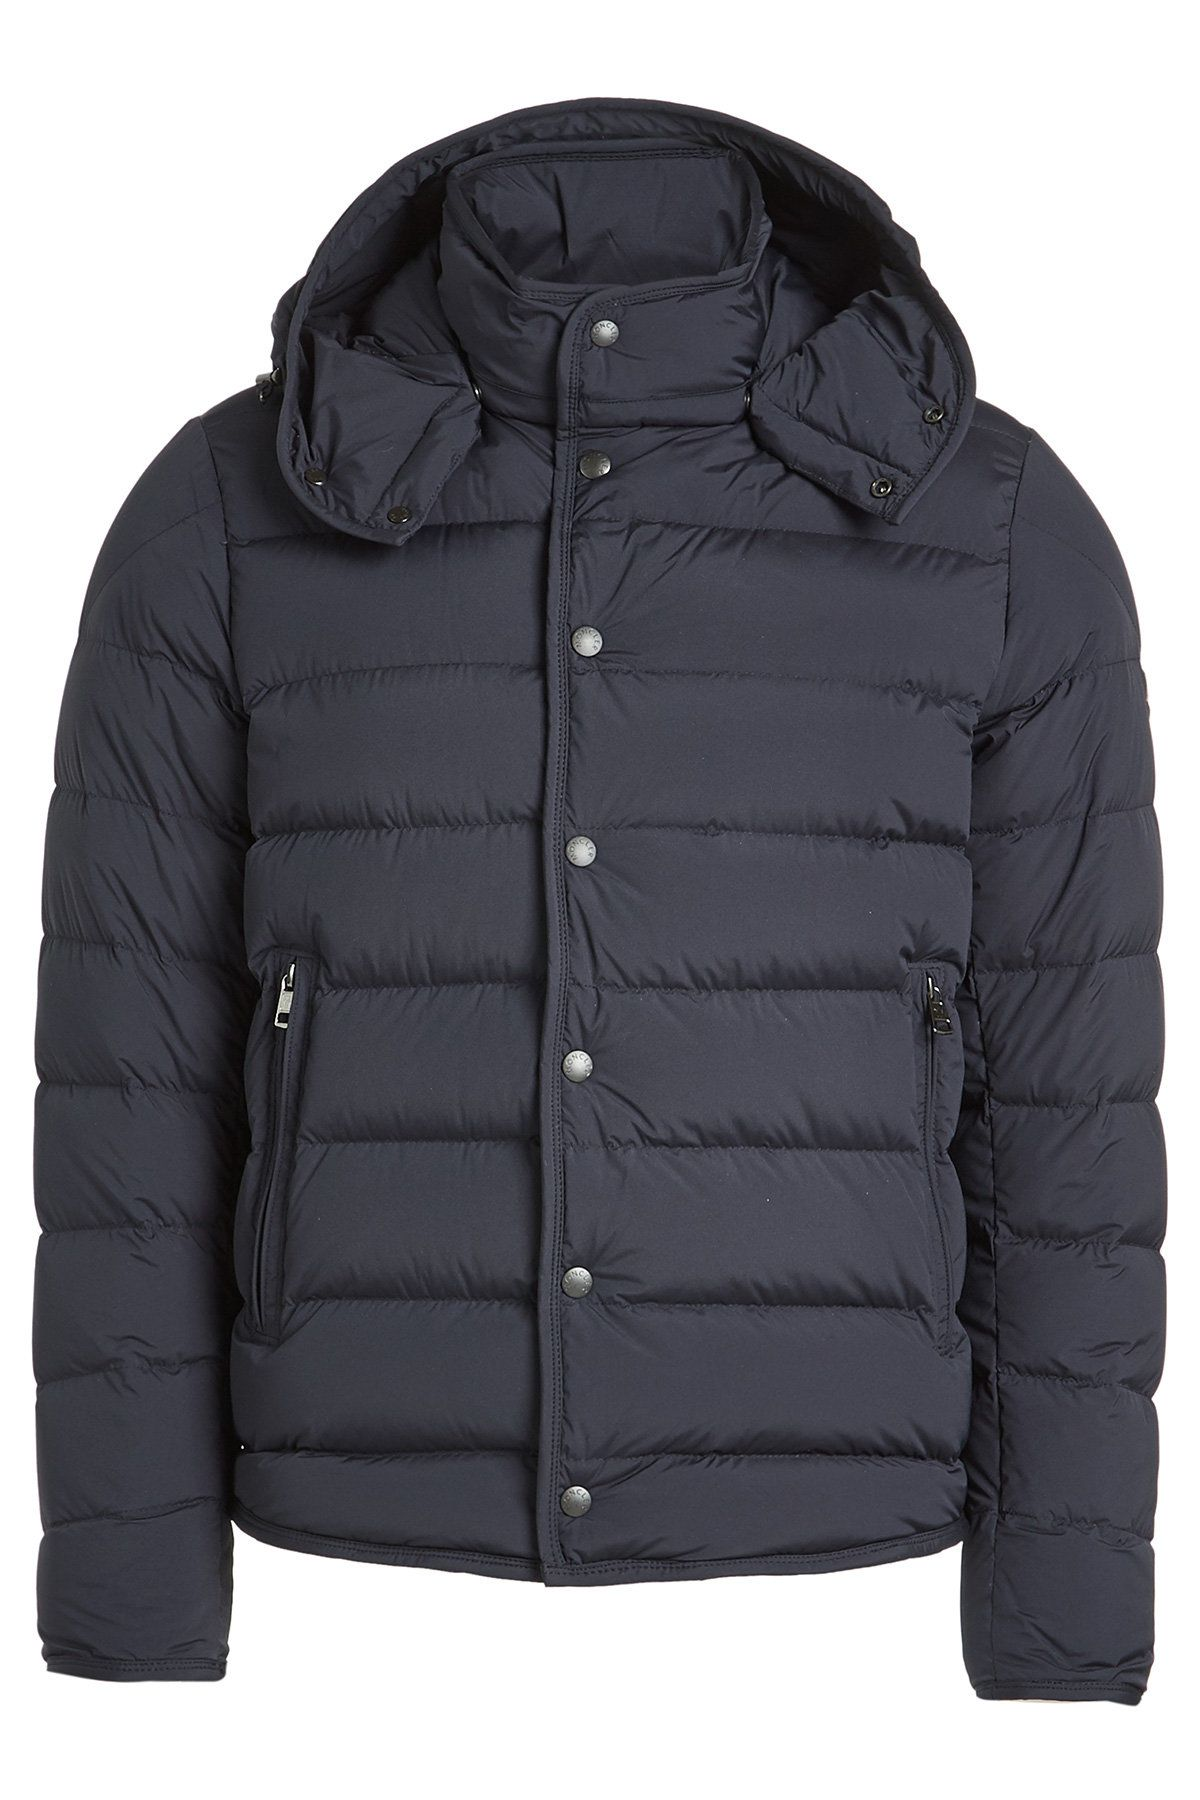 MONCLER Moncler Quilted Down Jacket with Hood. moncler